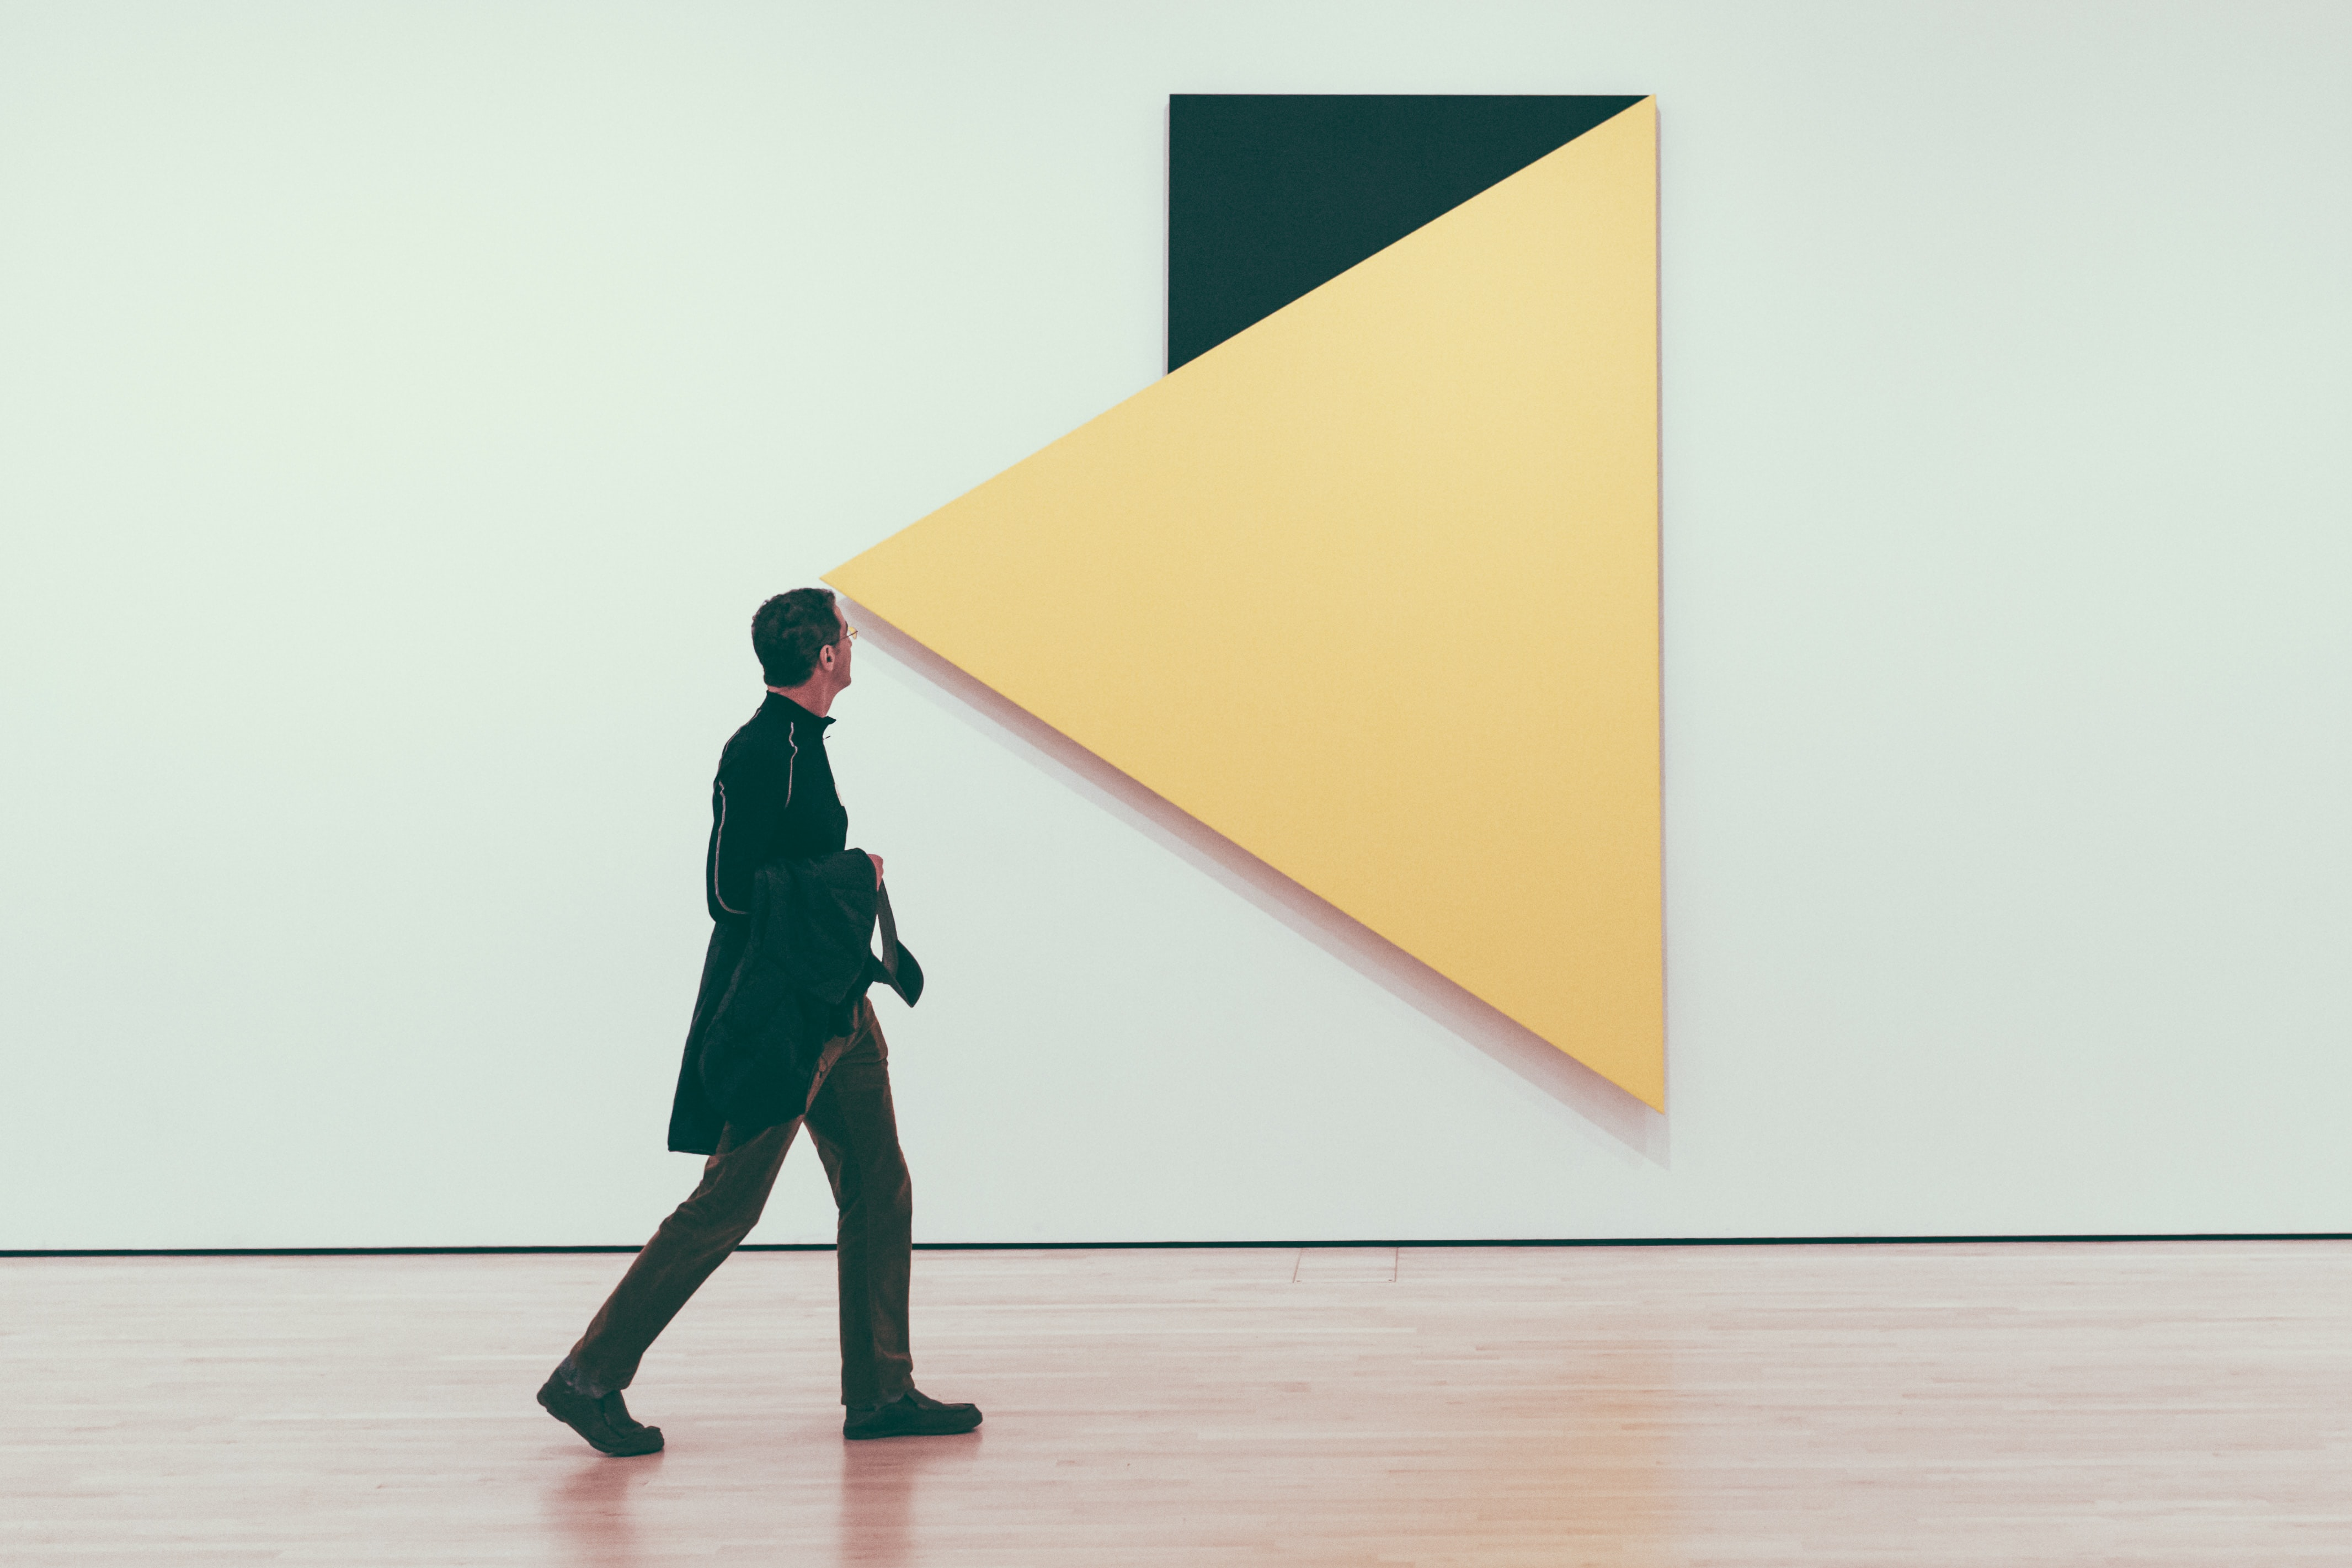 man looking on inverted yellow and green triangle wall art